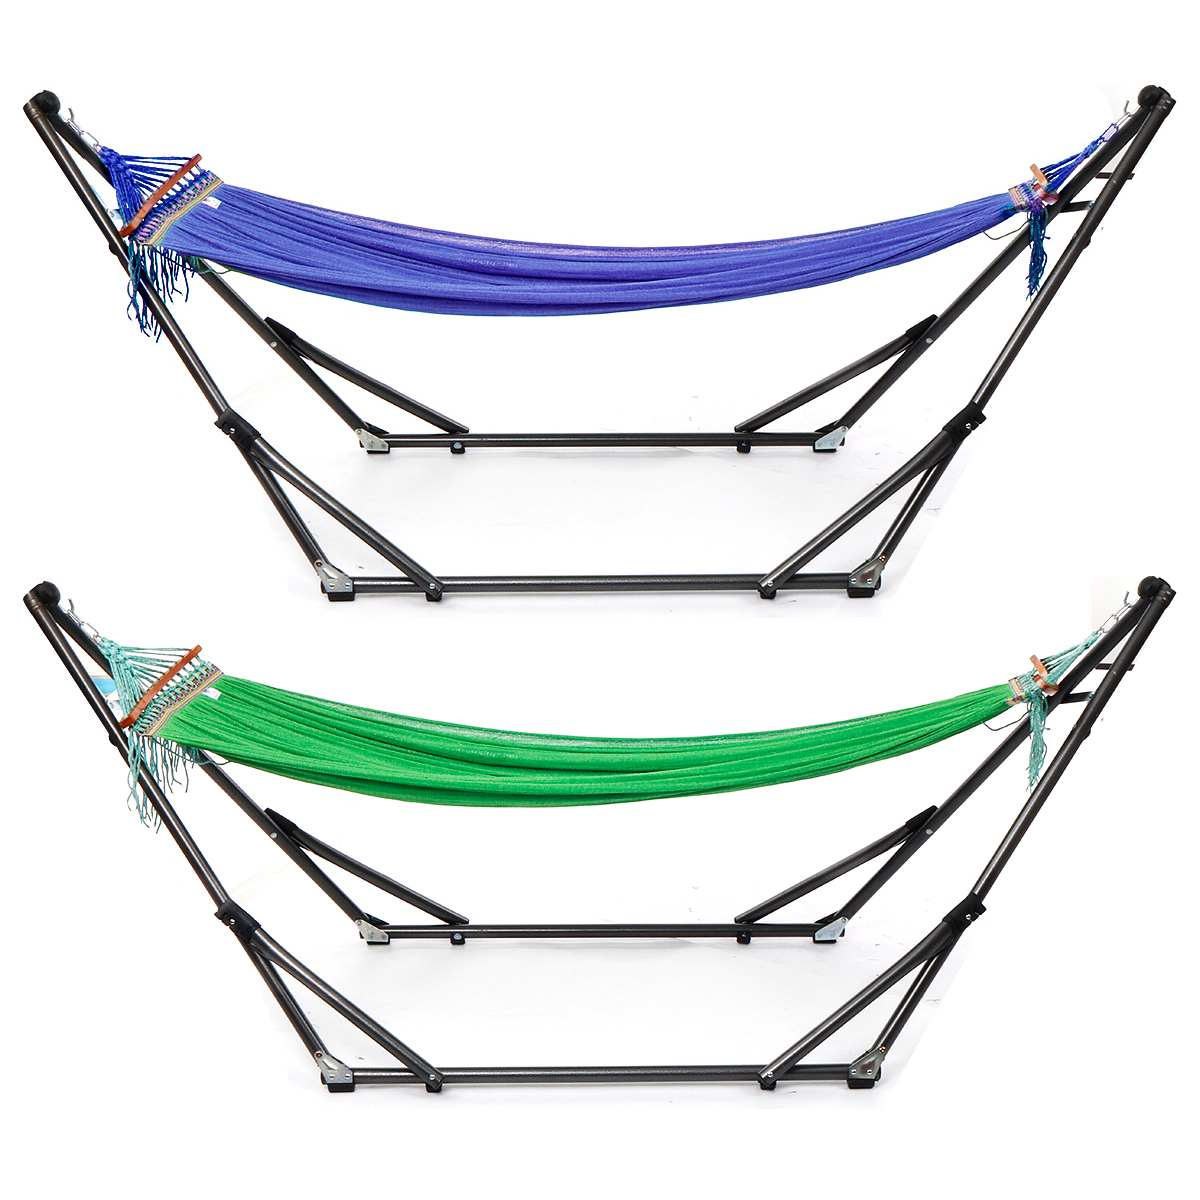 Folding Hammock Stand Bag Set 250KG Portable Steel Pipe Sleeping Swing Garden Outdoor Furniture Hunting Camping Accessories Kit - 3